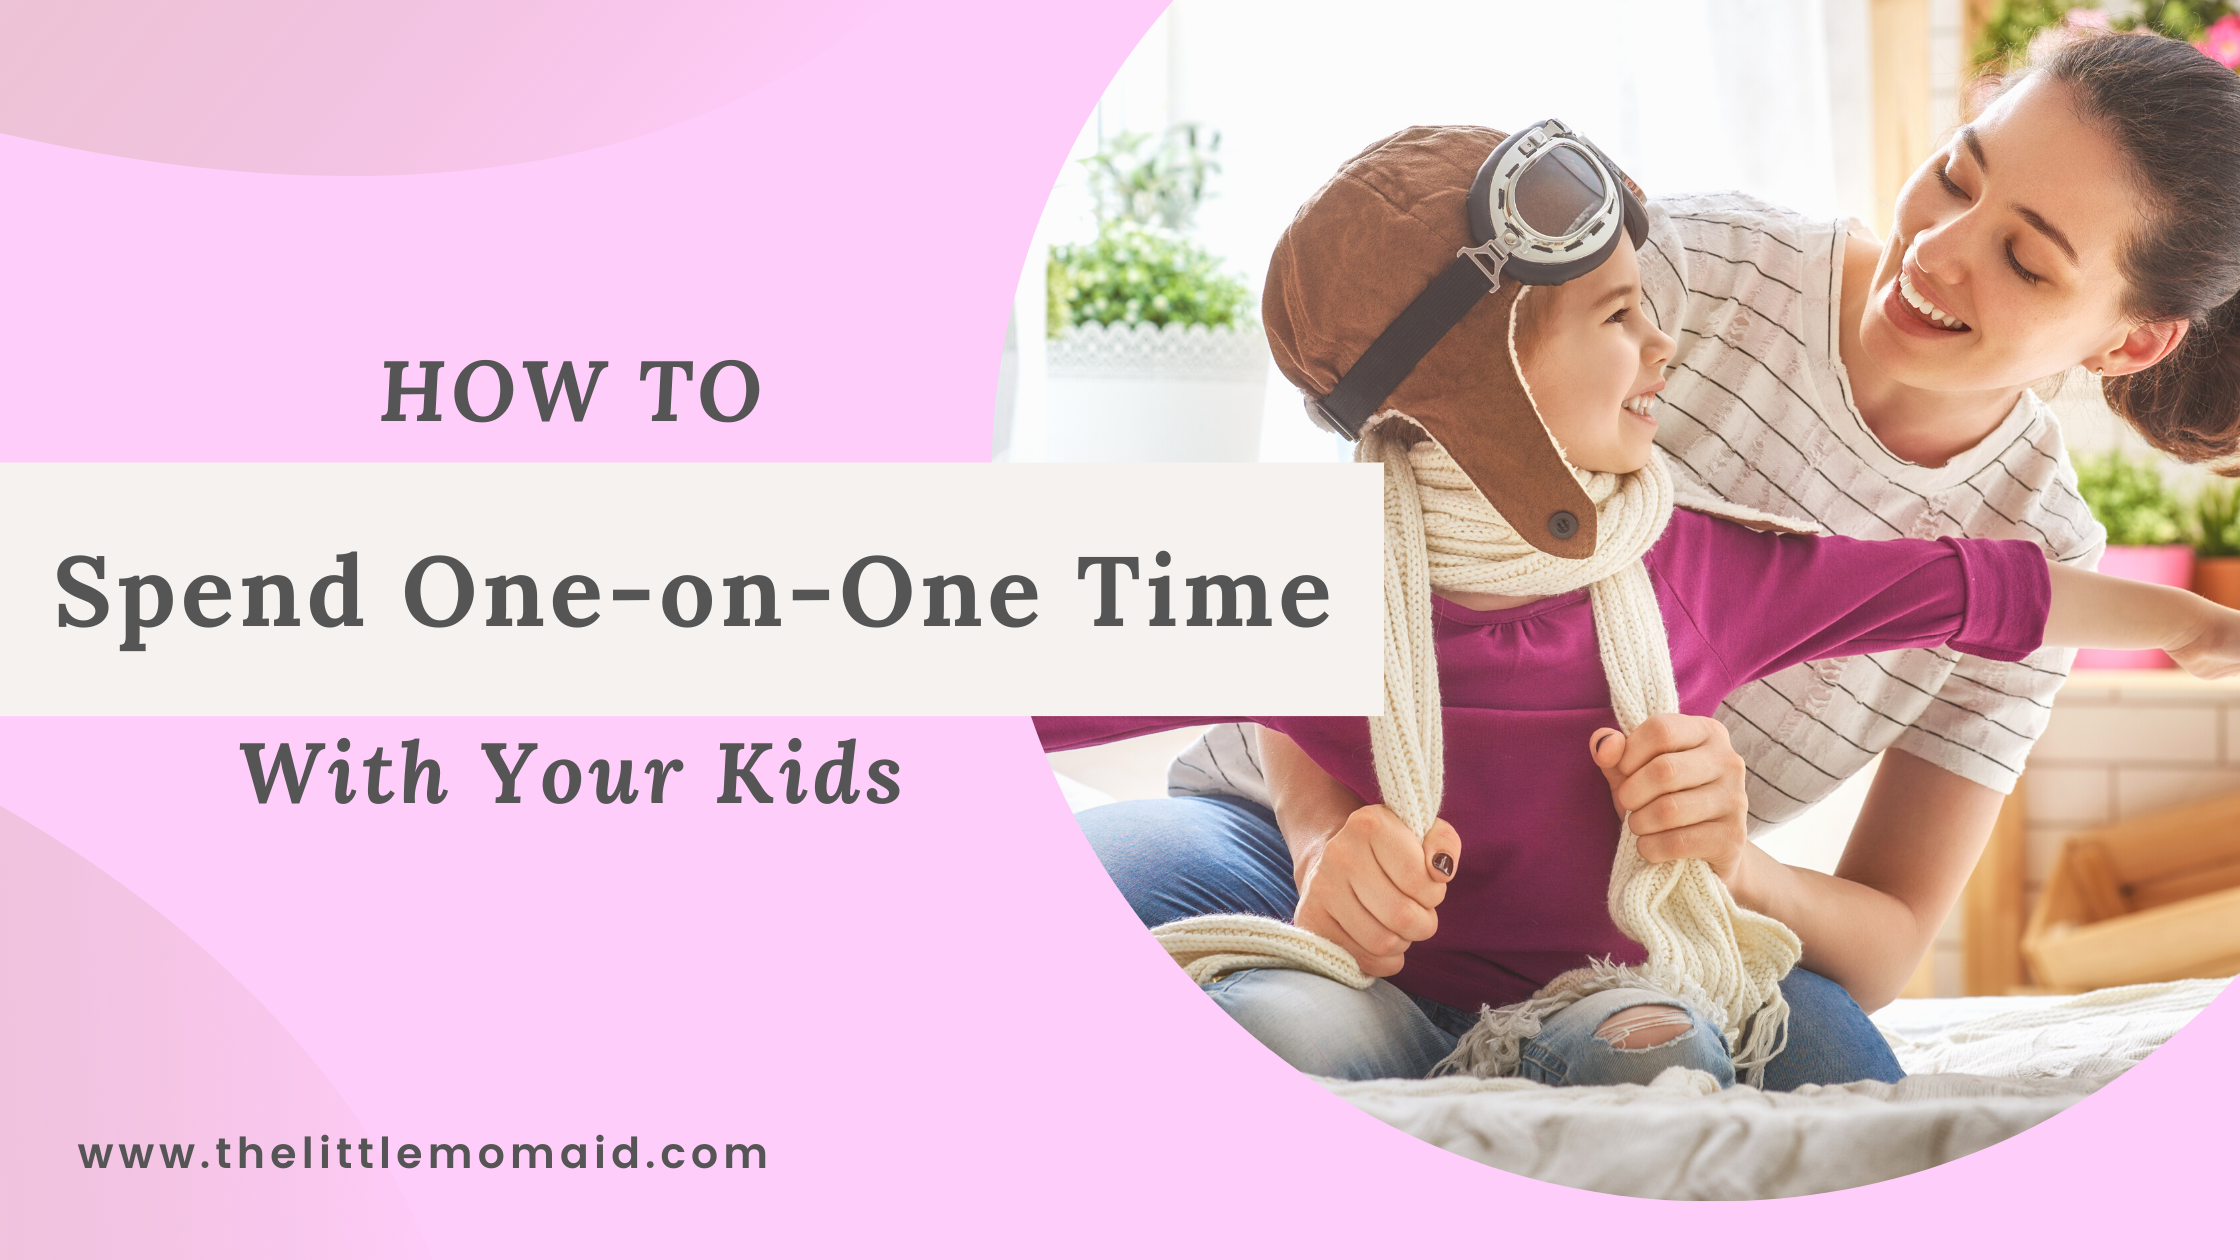 ways to spend one-on-one time with kids